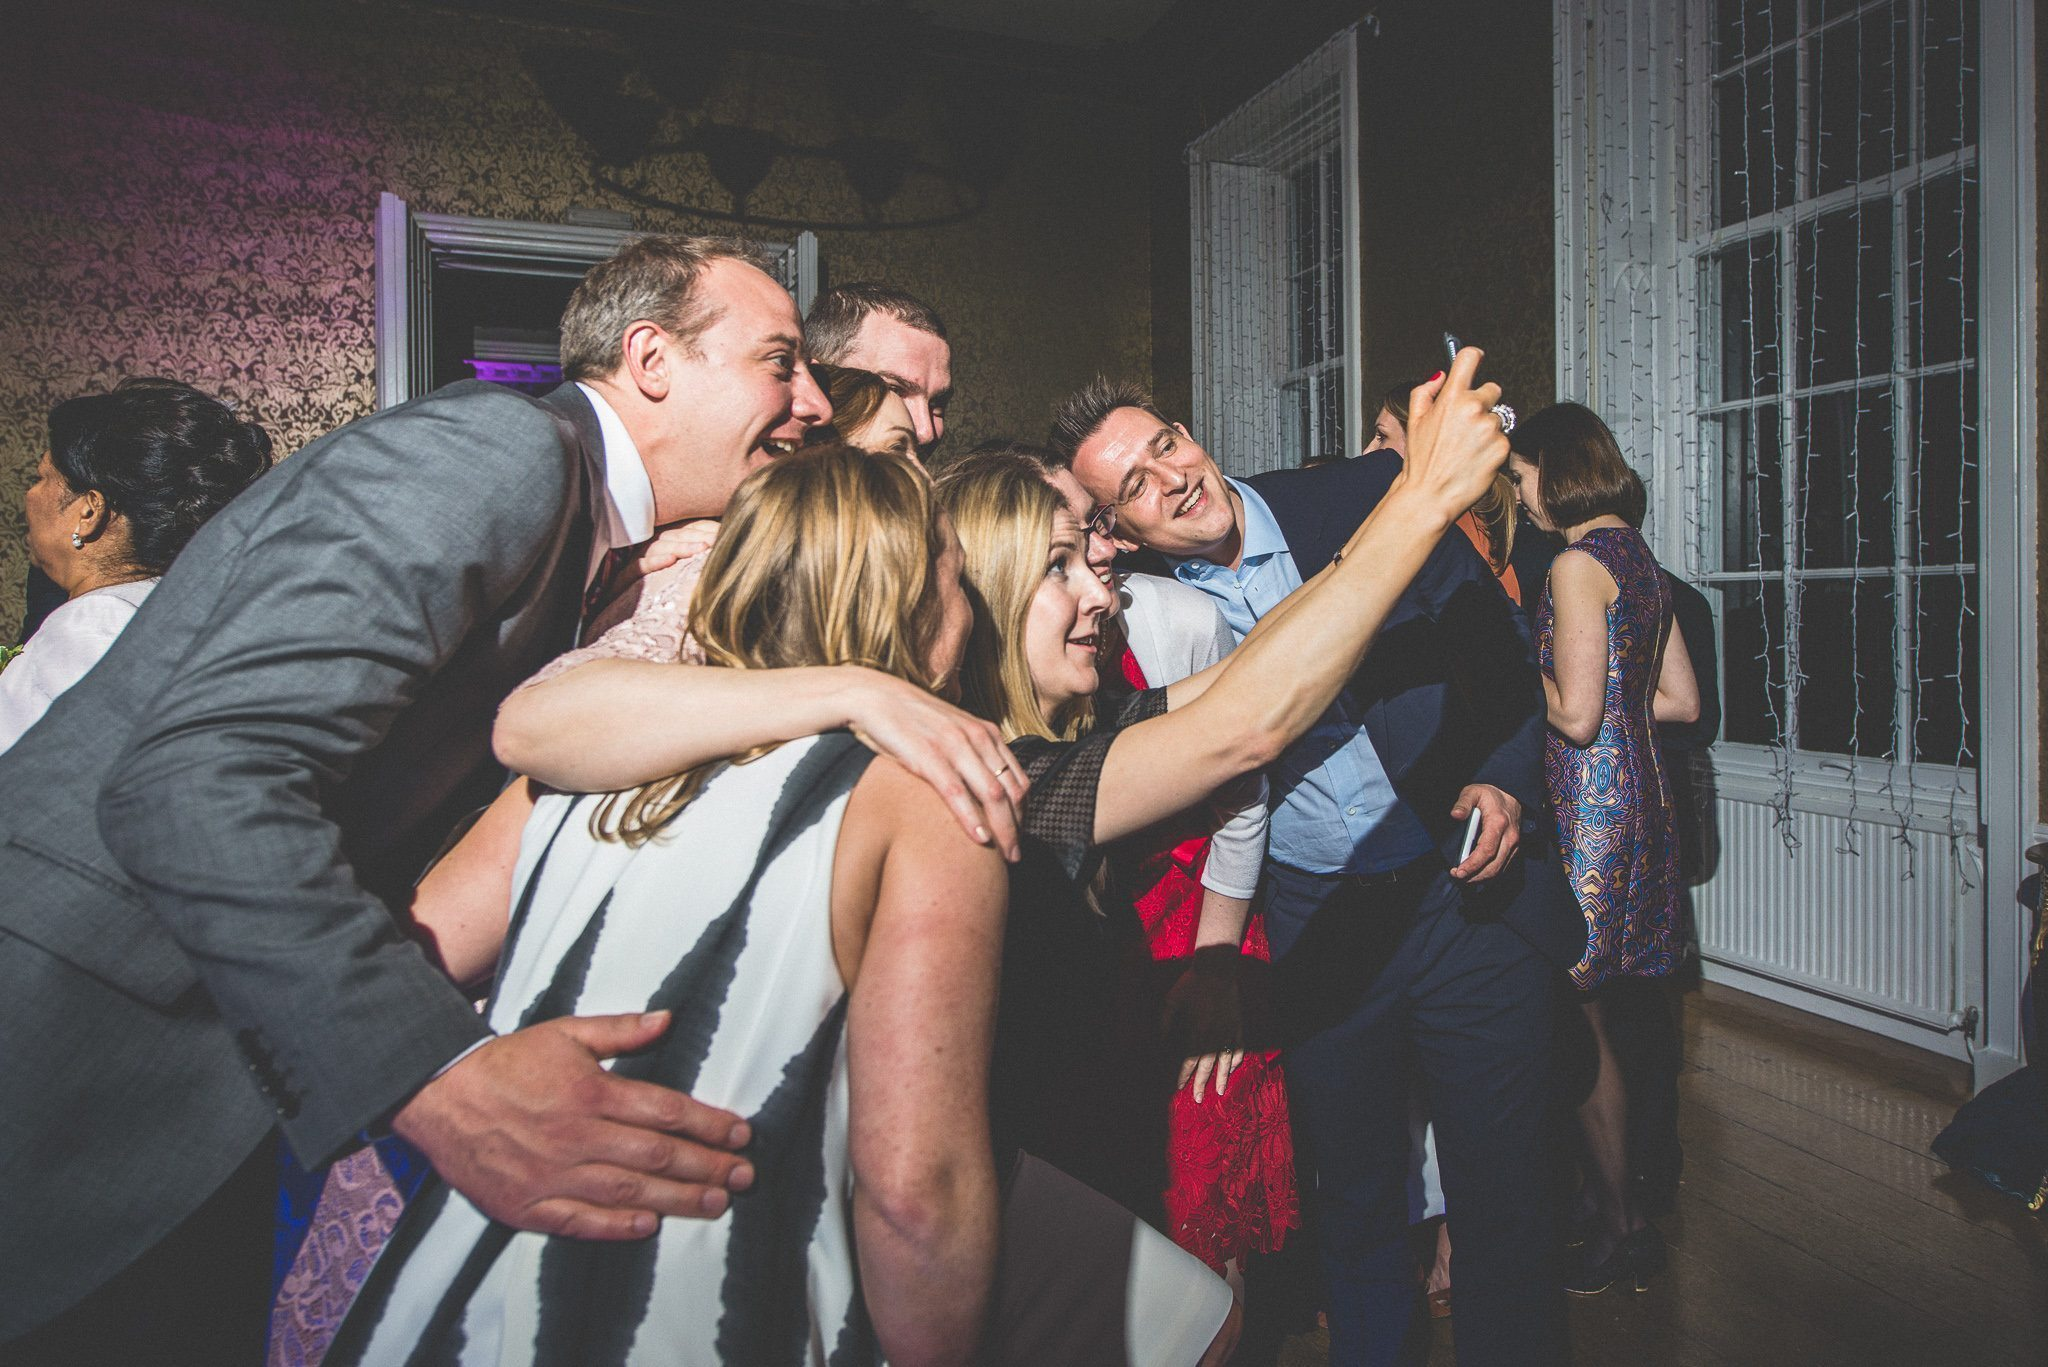 A group of guests pose for a selfie on the dancefloor